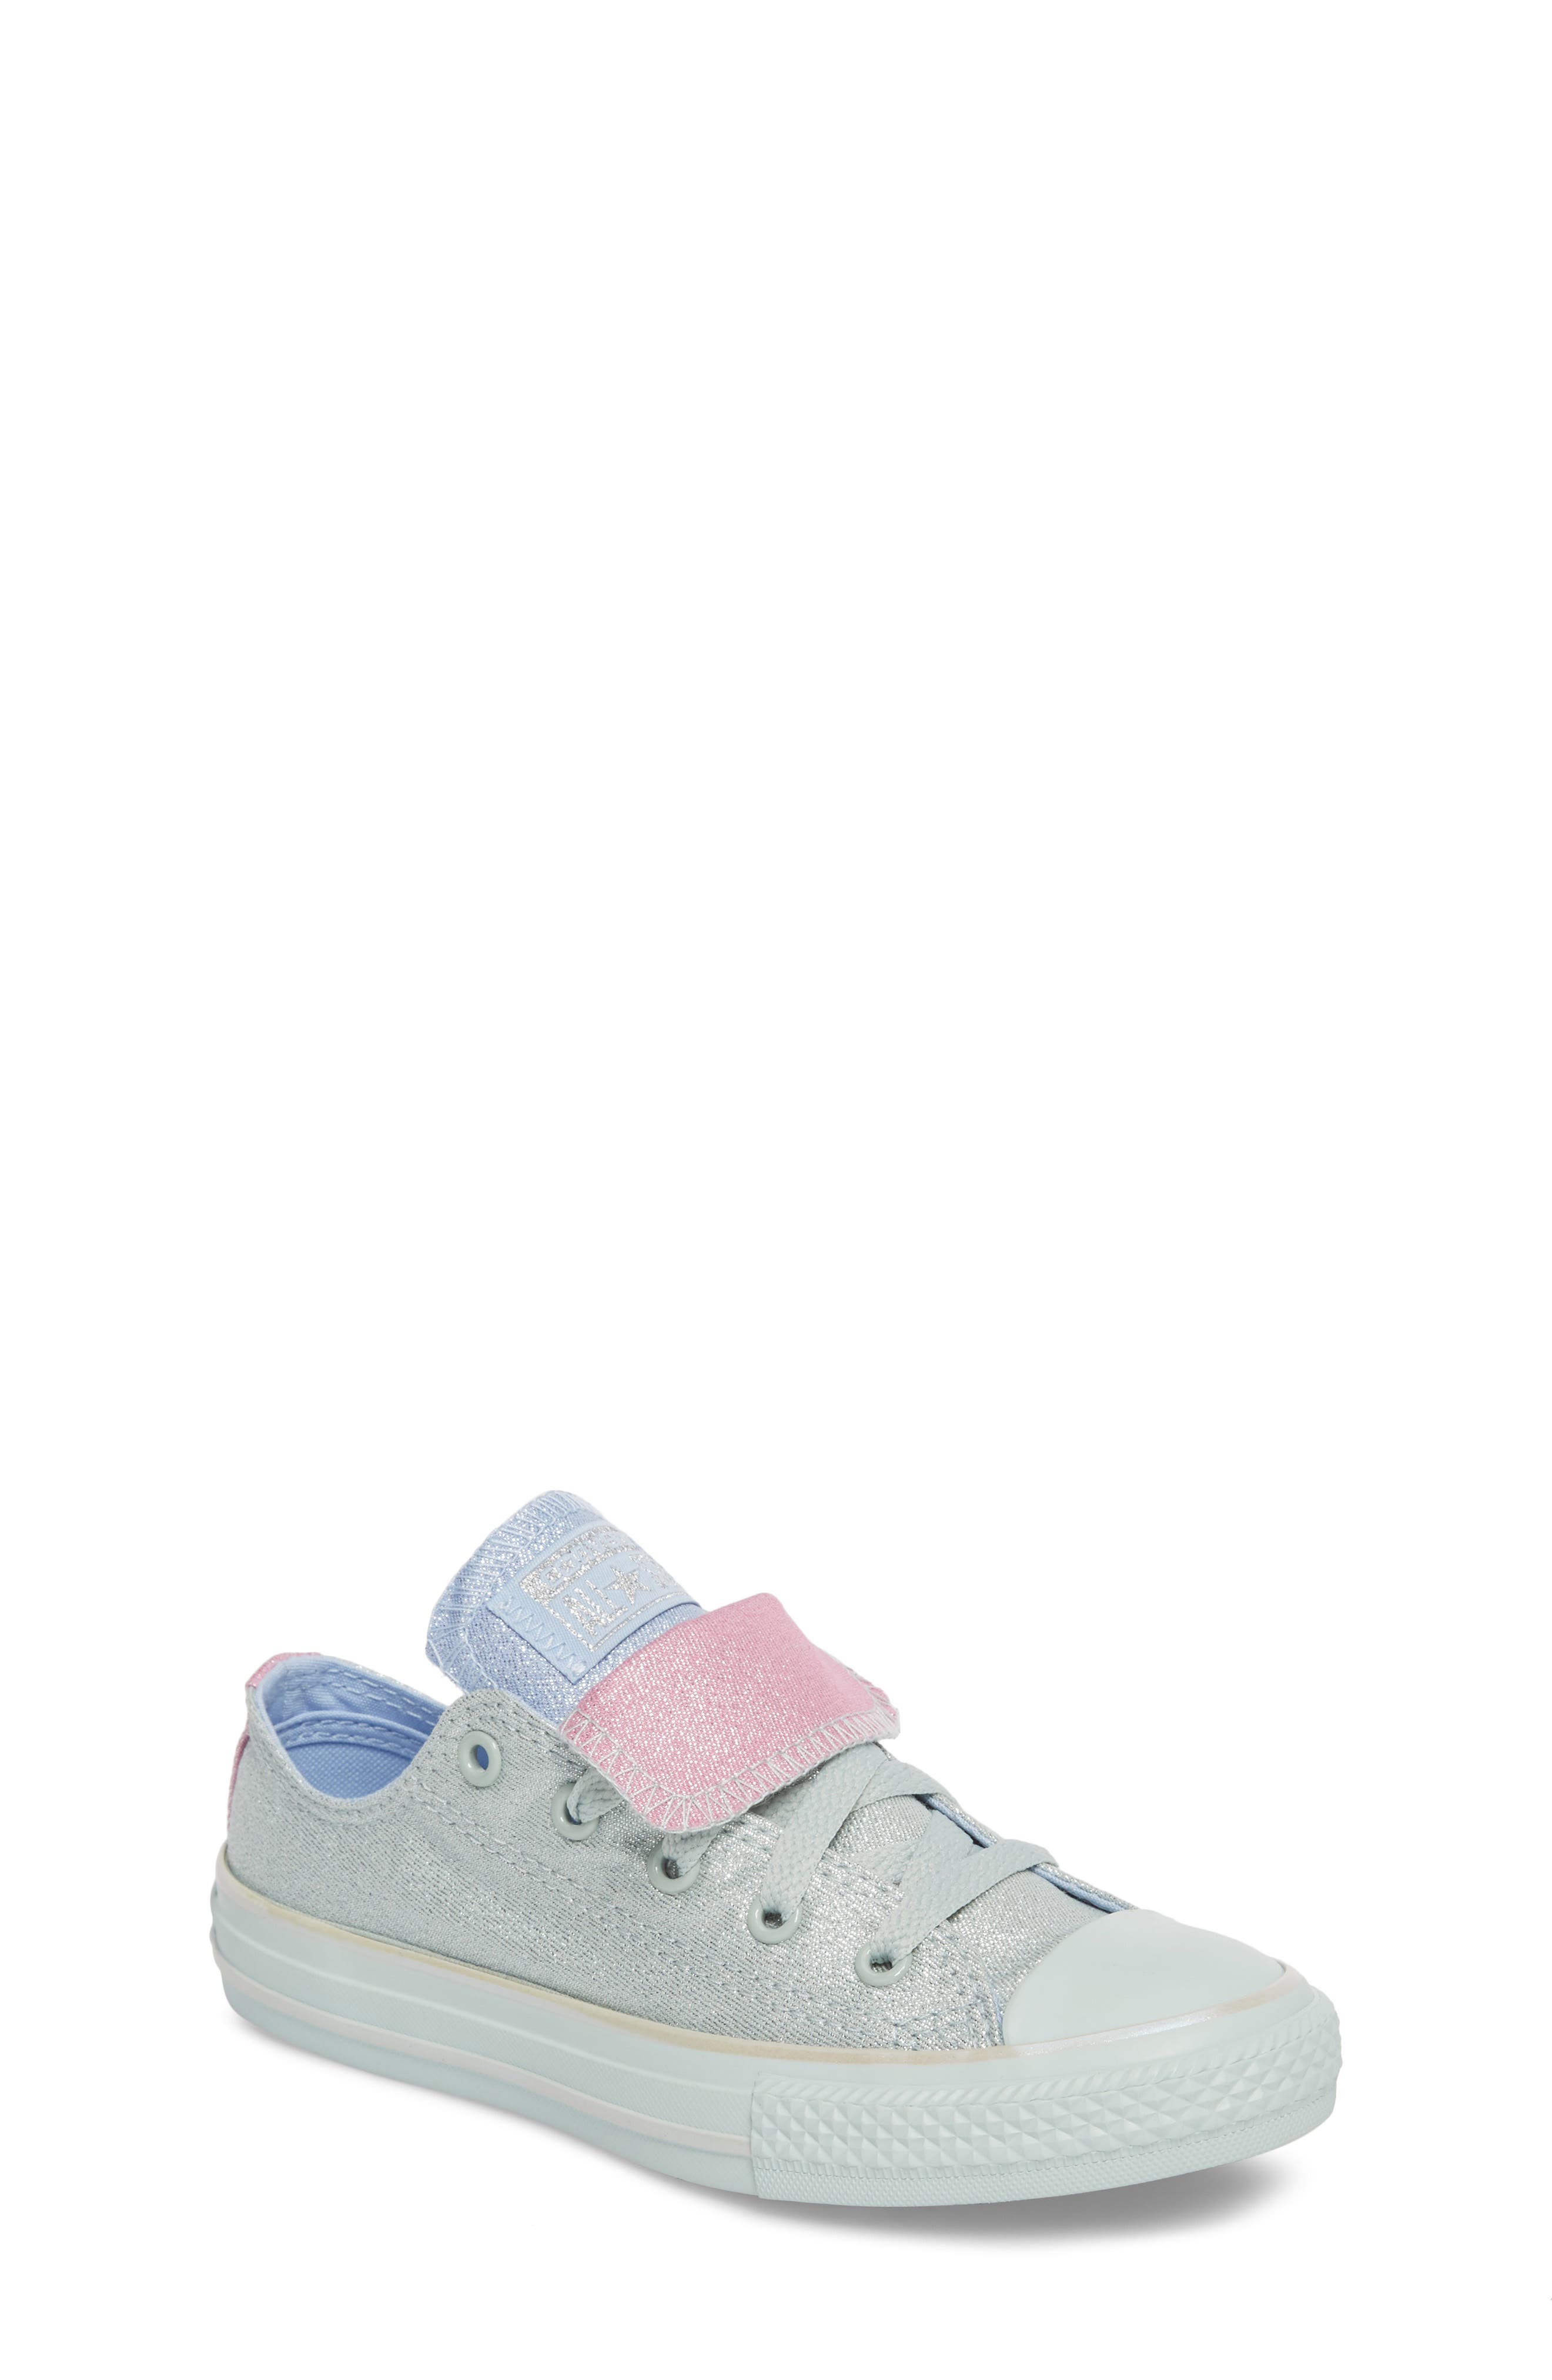 All Star<sup>®</sup> Shimmer Double Tongue Sneaker,                             Main thumbnail 1, color,                             301